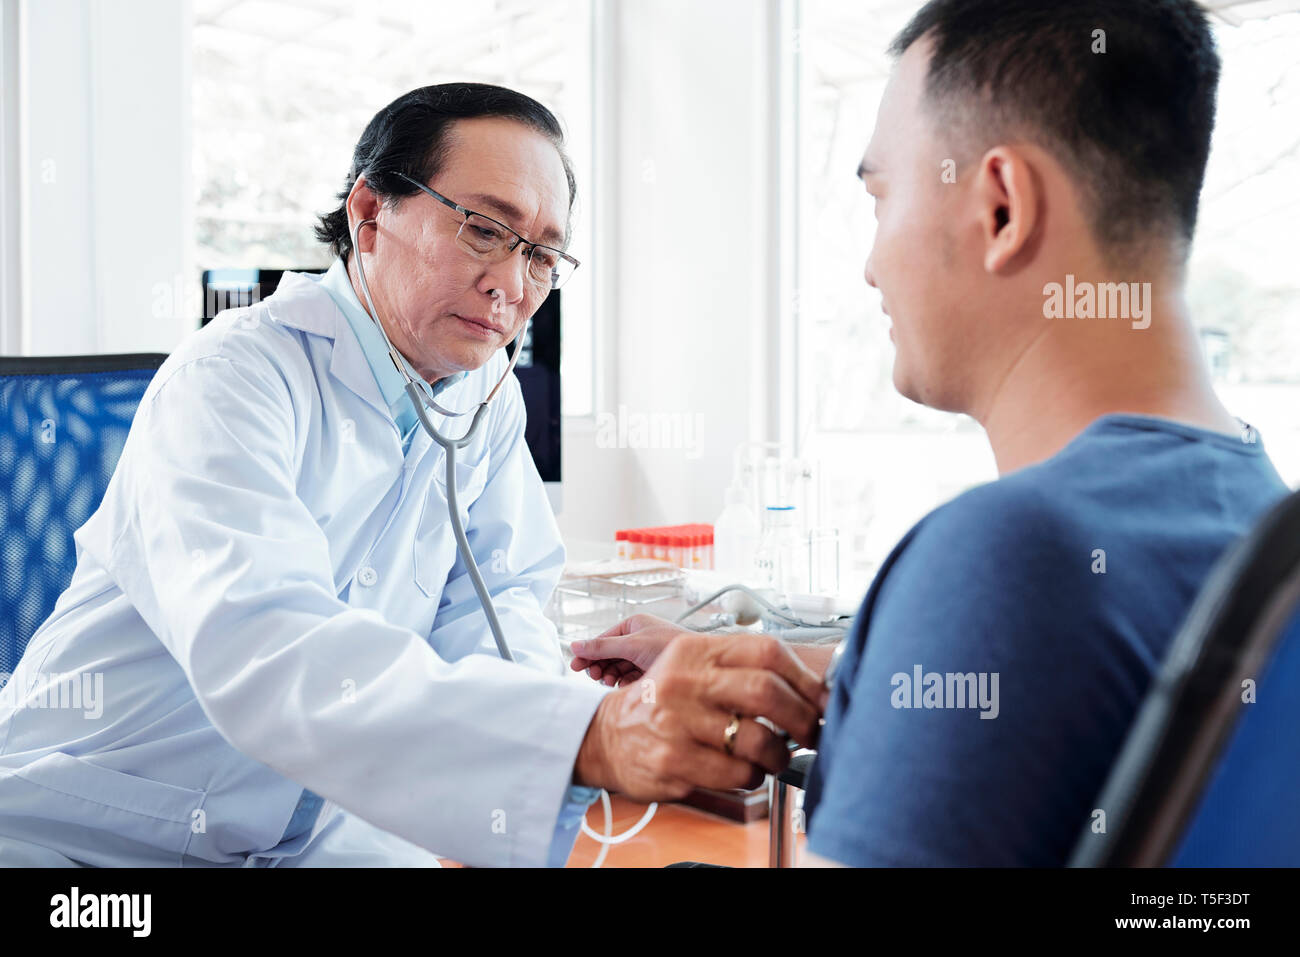 Doctor checking heartbeat of patient - Stock Image